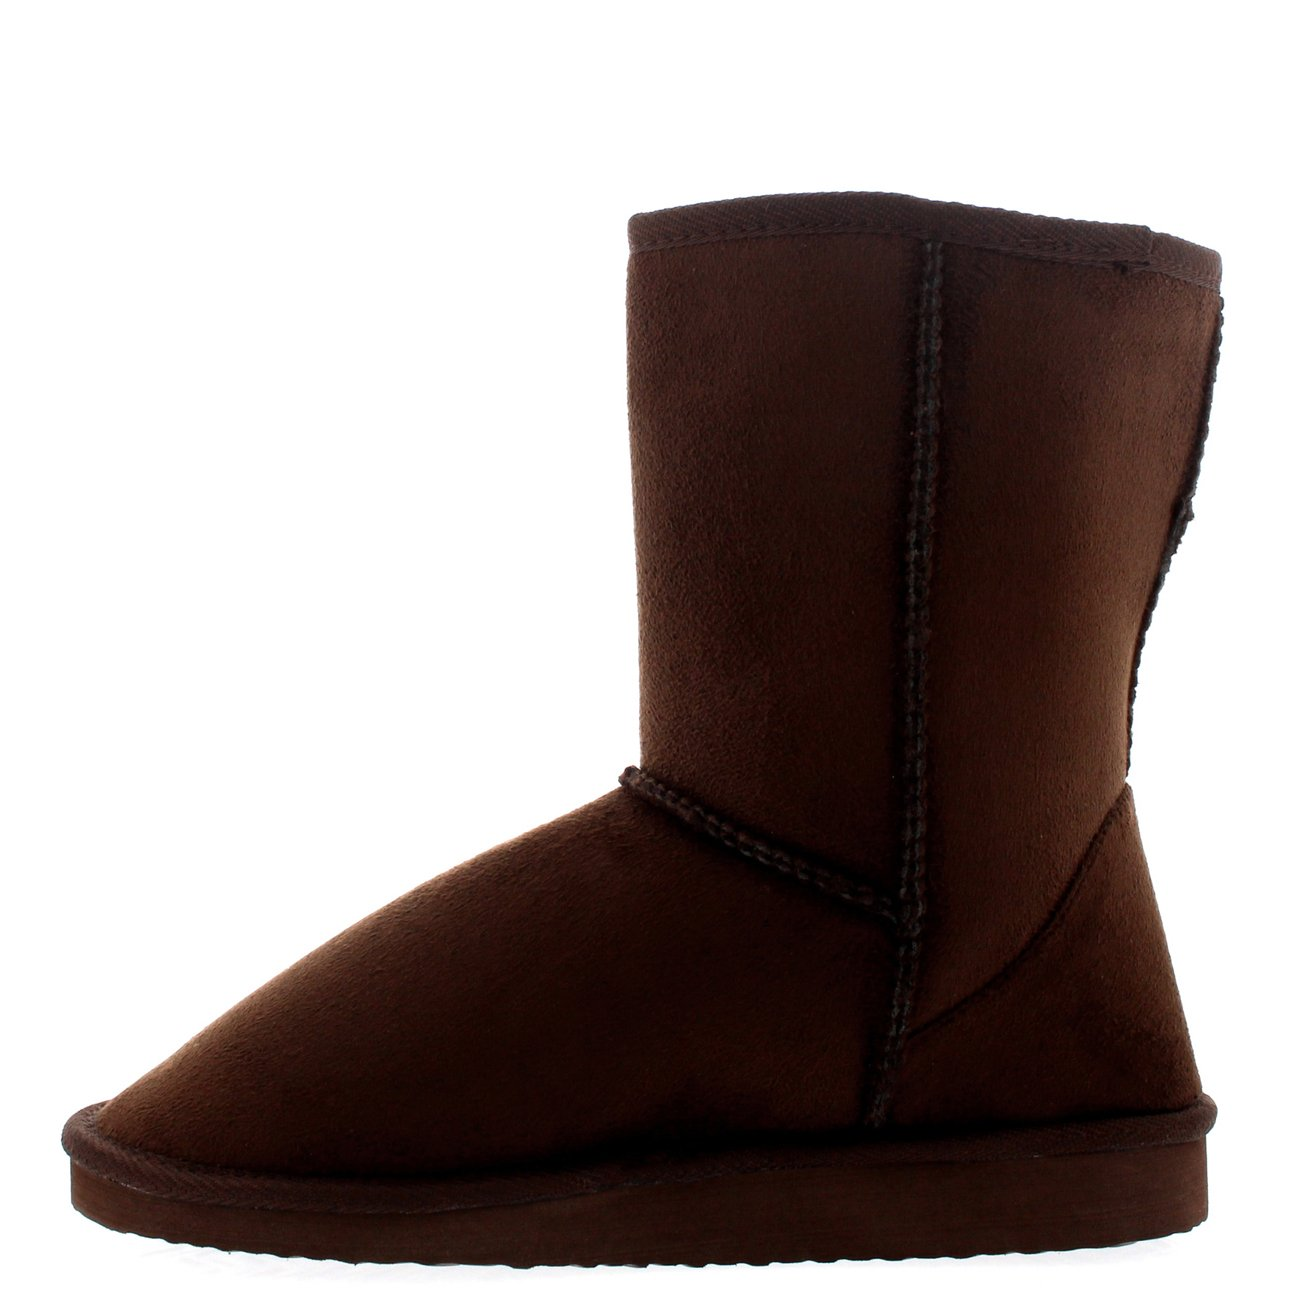 75d5b5bdff5 Womens Short Fashion Warm Hard Sole Winter Classic Flat Ankle Snow Boots:  Amazon.co.uk: Shoes & Bags